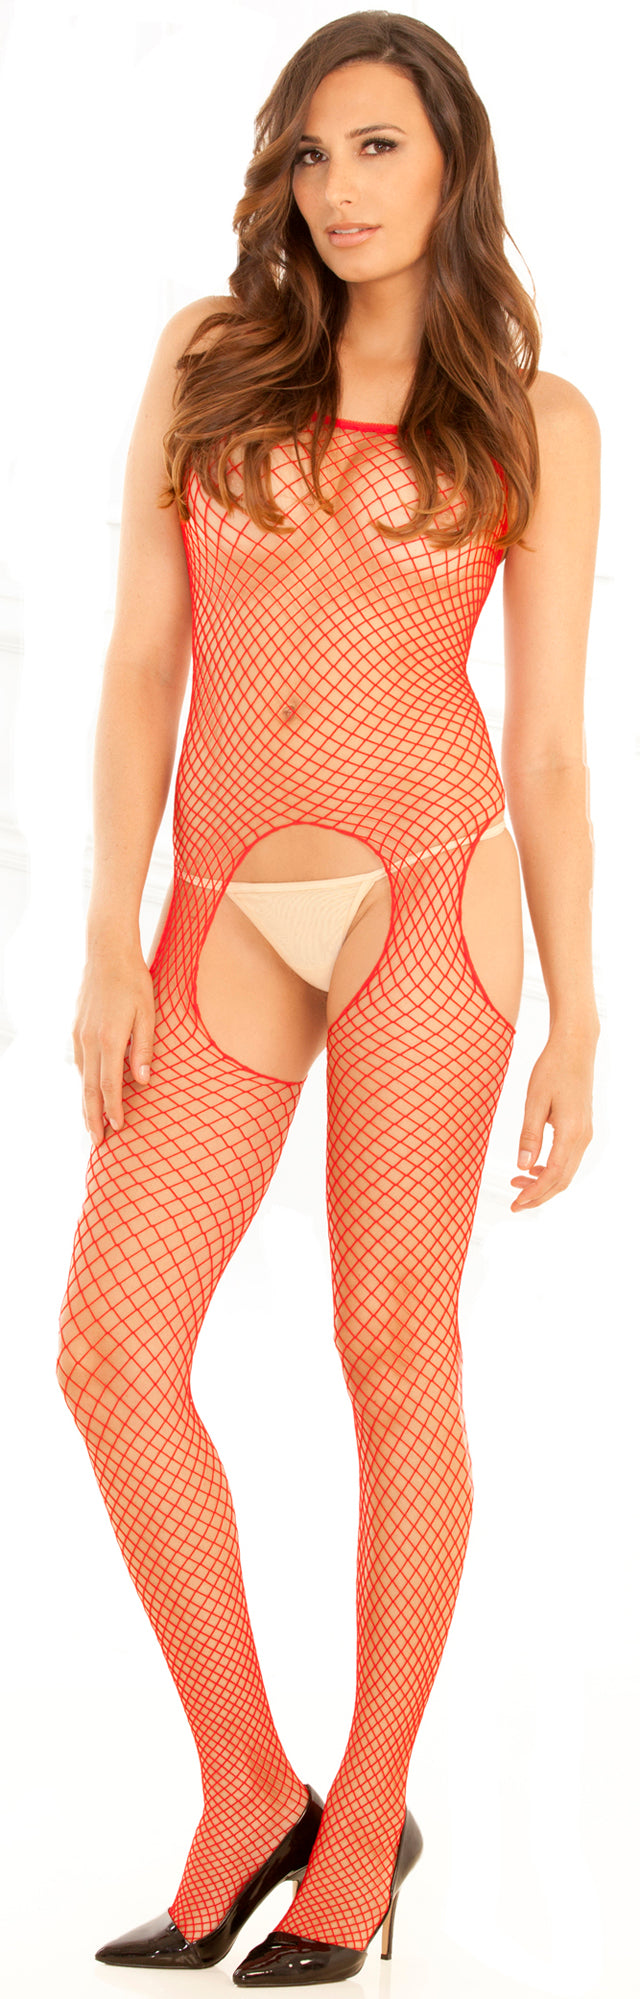 Industrial Net Suspender Bodystocking RR7002-HON Red Front